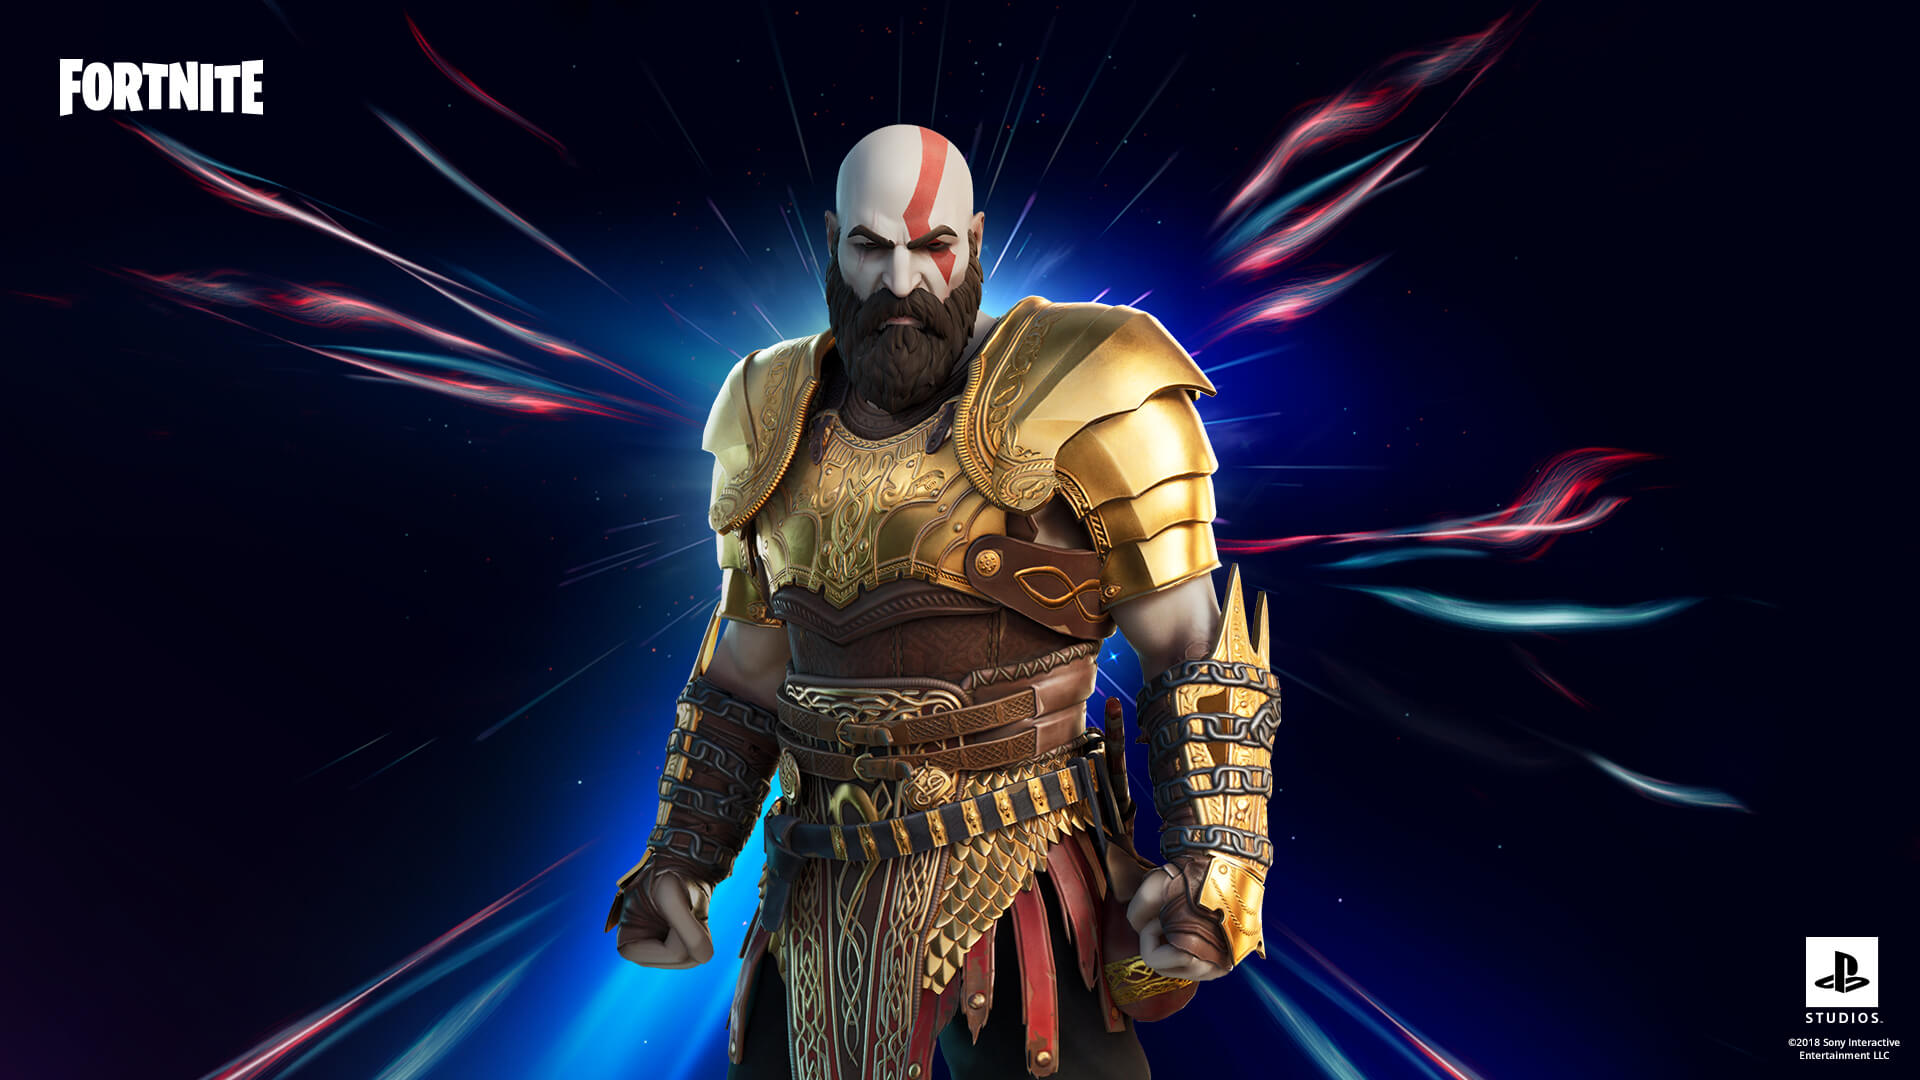 Fortnite Kratos Armored Style Outfit